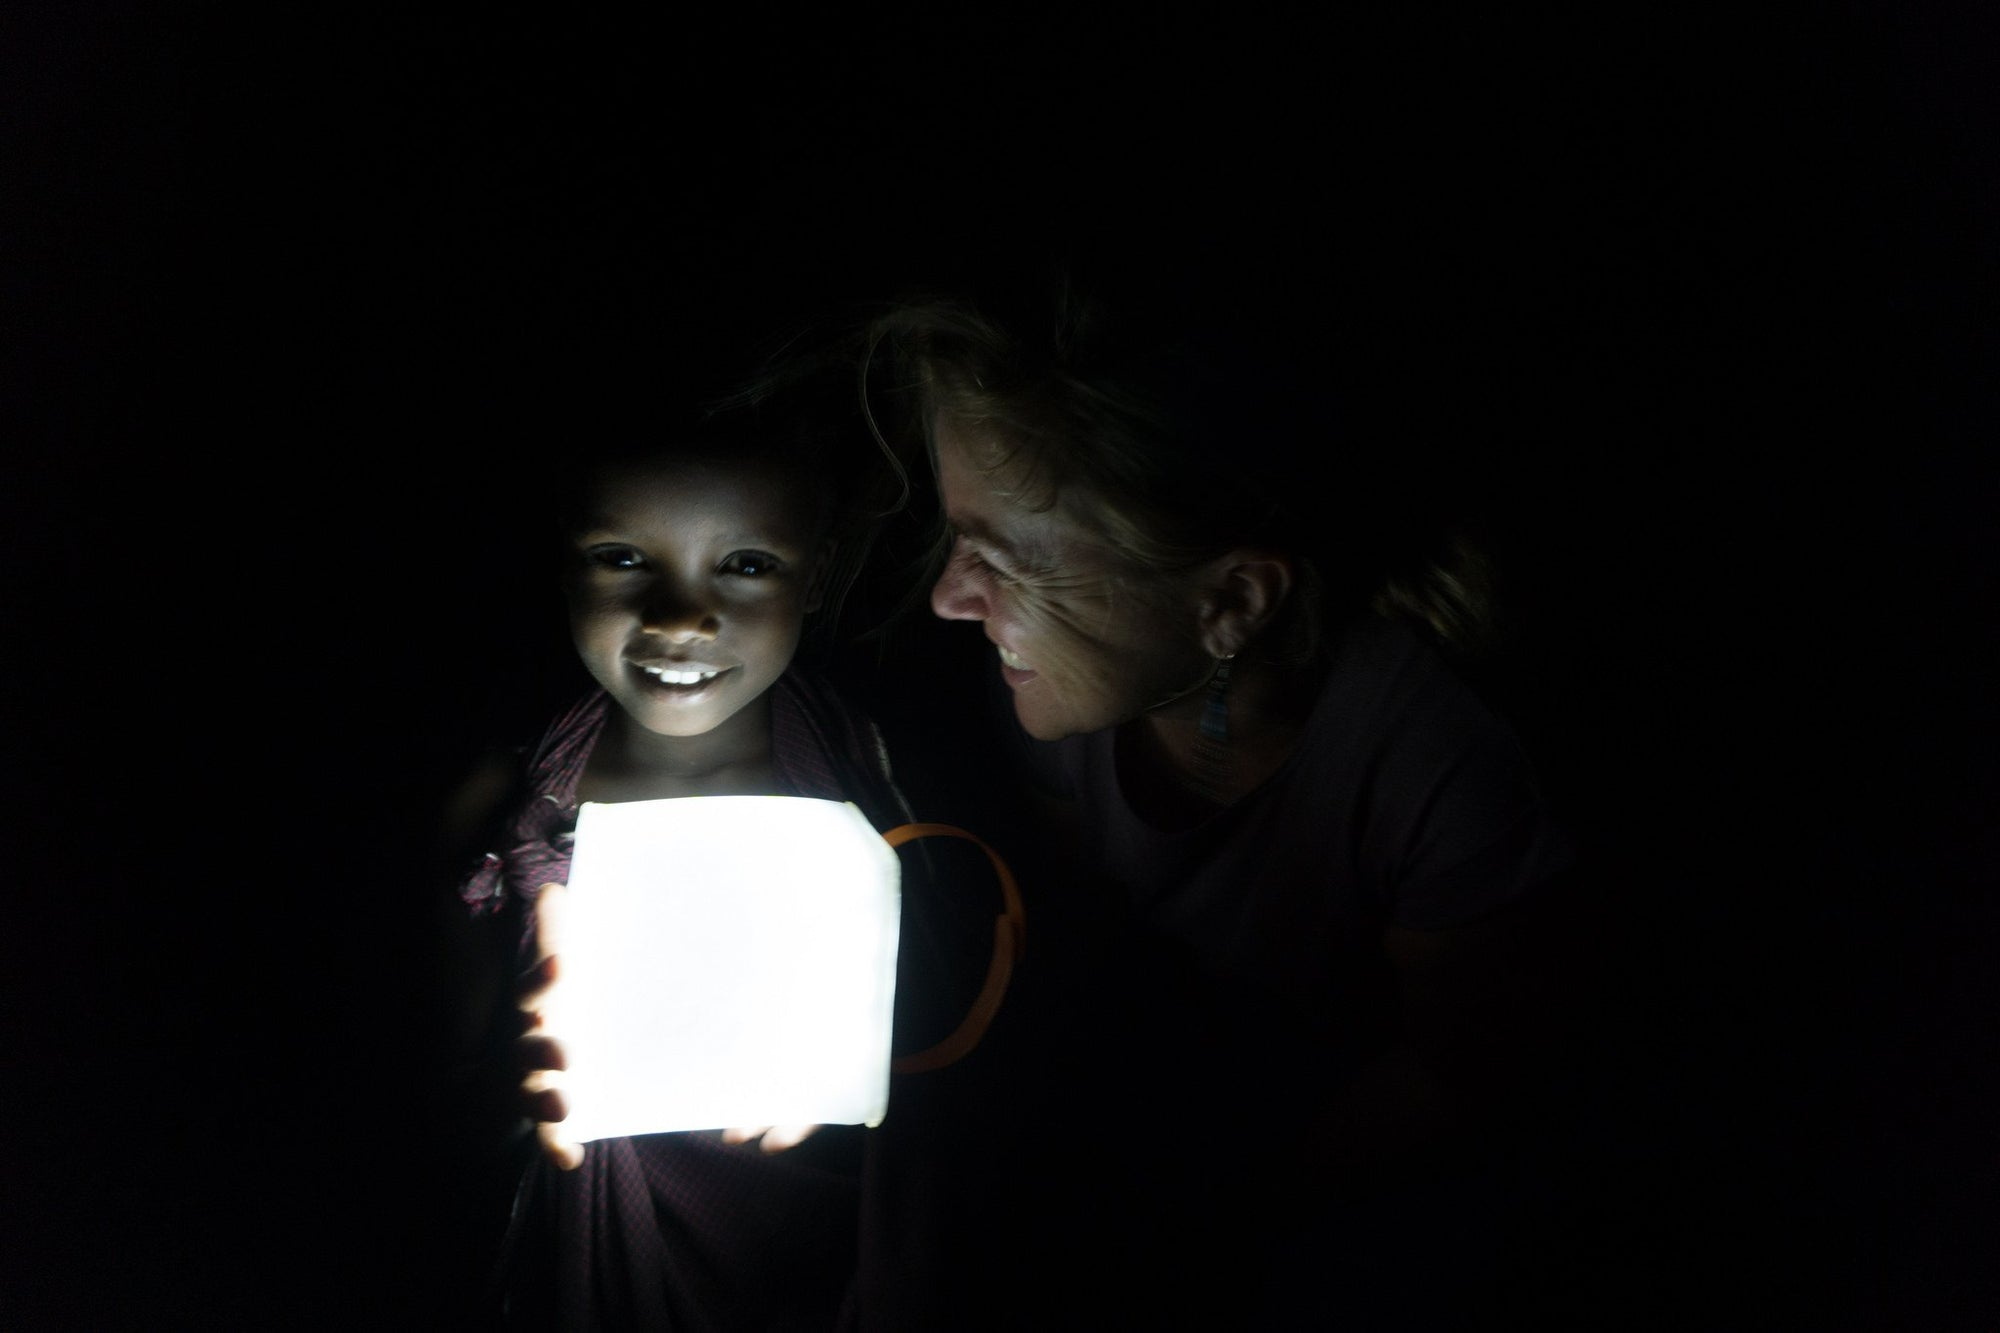 Providing Light in Rural Tanzania: Students for Africa and LuminAID-LuminAID